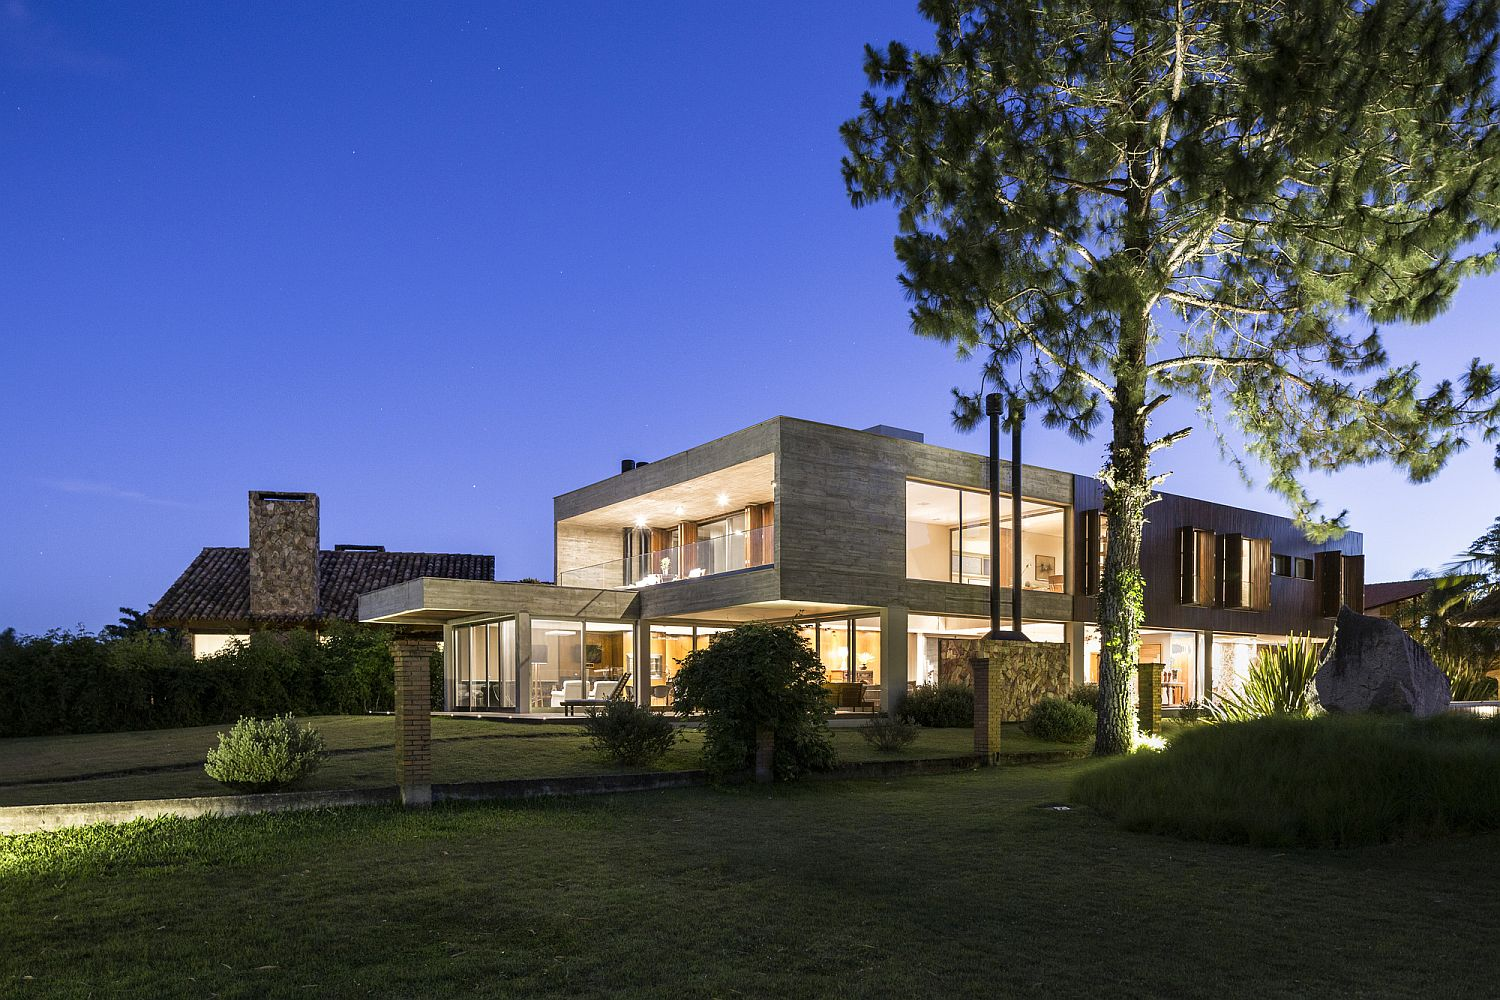 Warm lighting and green landscape elevate the style quotient of the Brazilian home